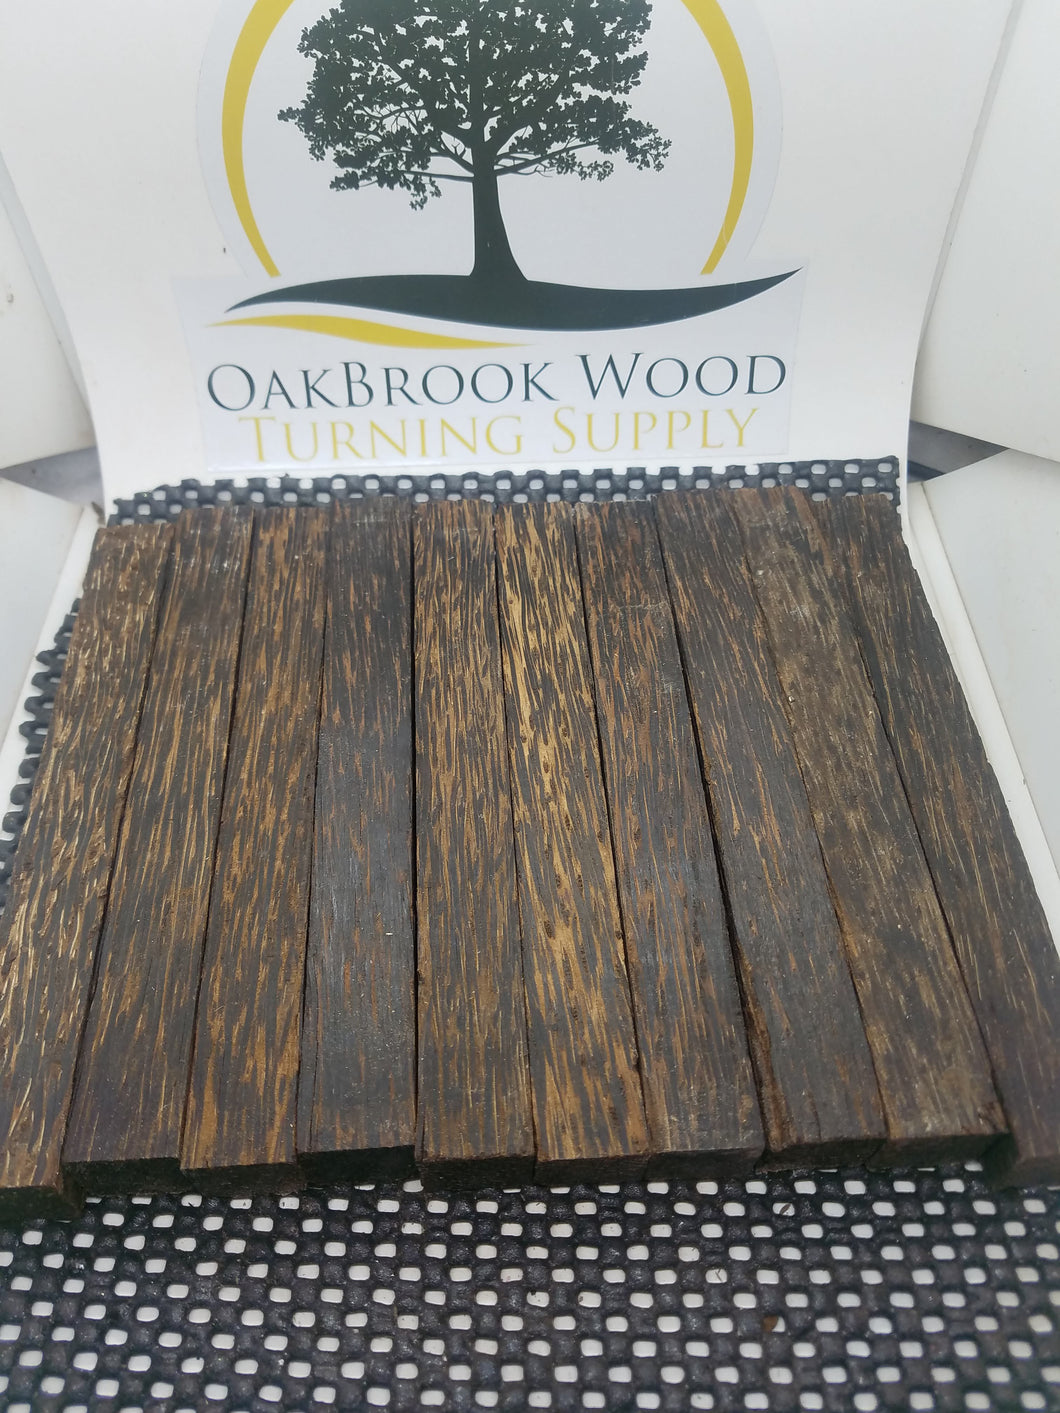 Black Palm - Oakbrook Wood Turning Supply